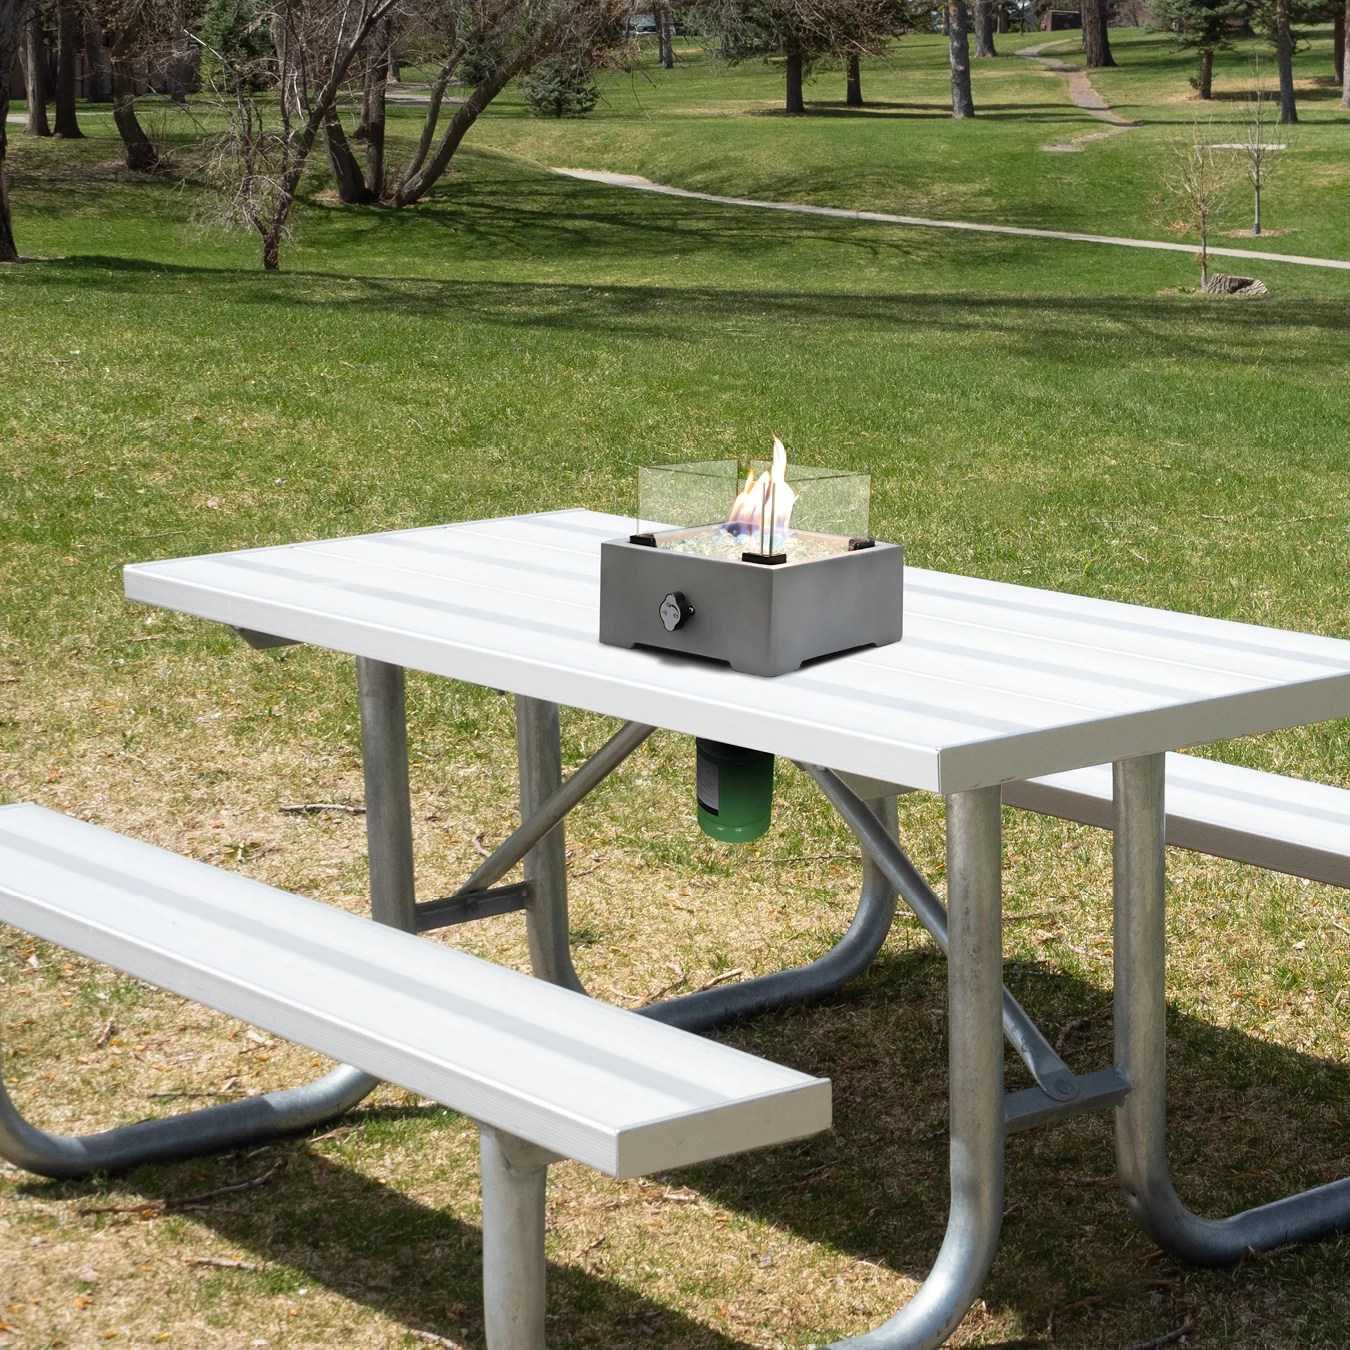 stewood 7 7 h concrete propane outdoor fire pit table insert